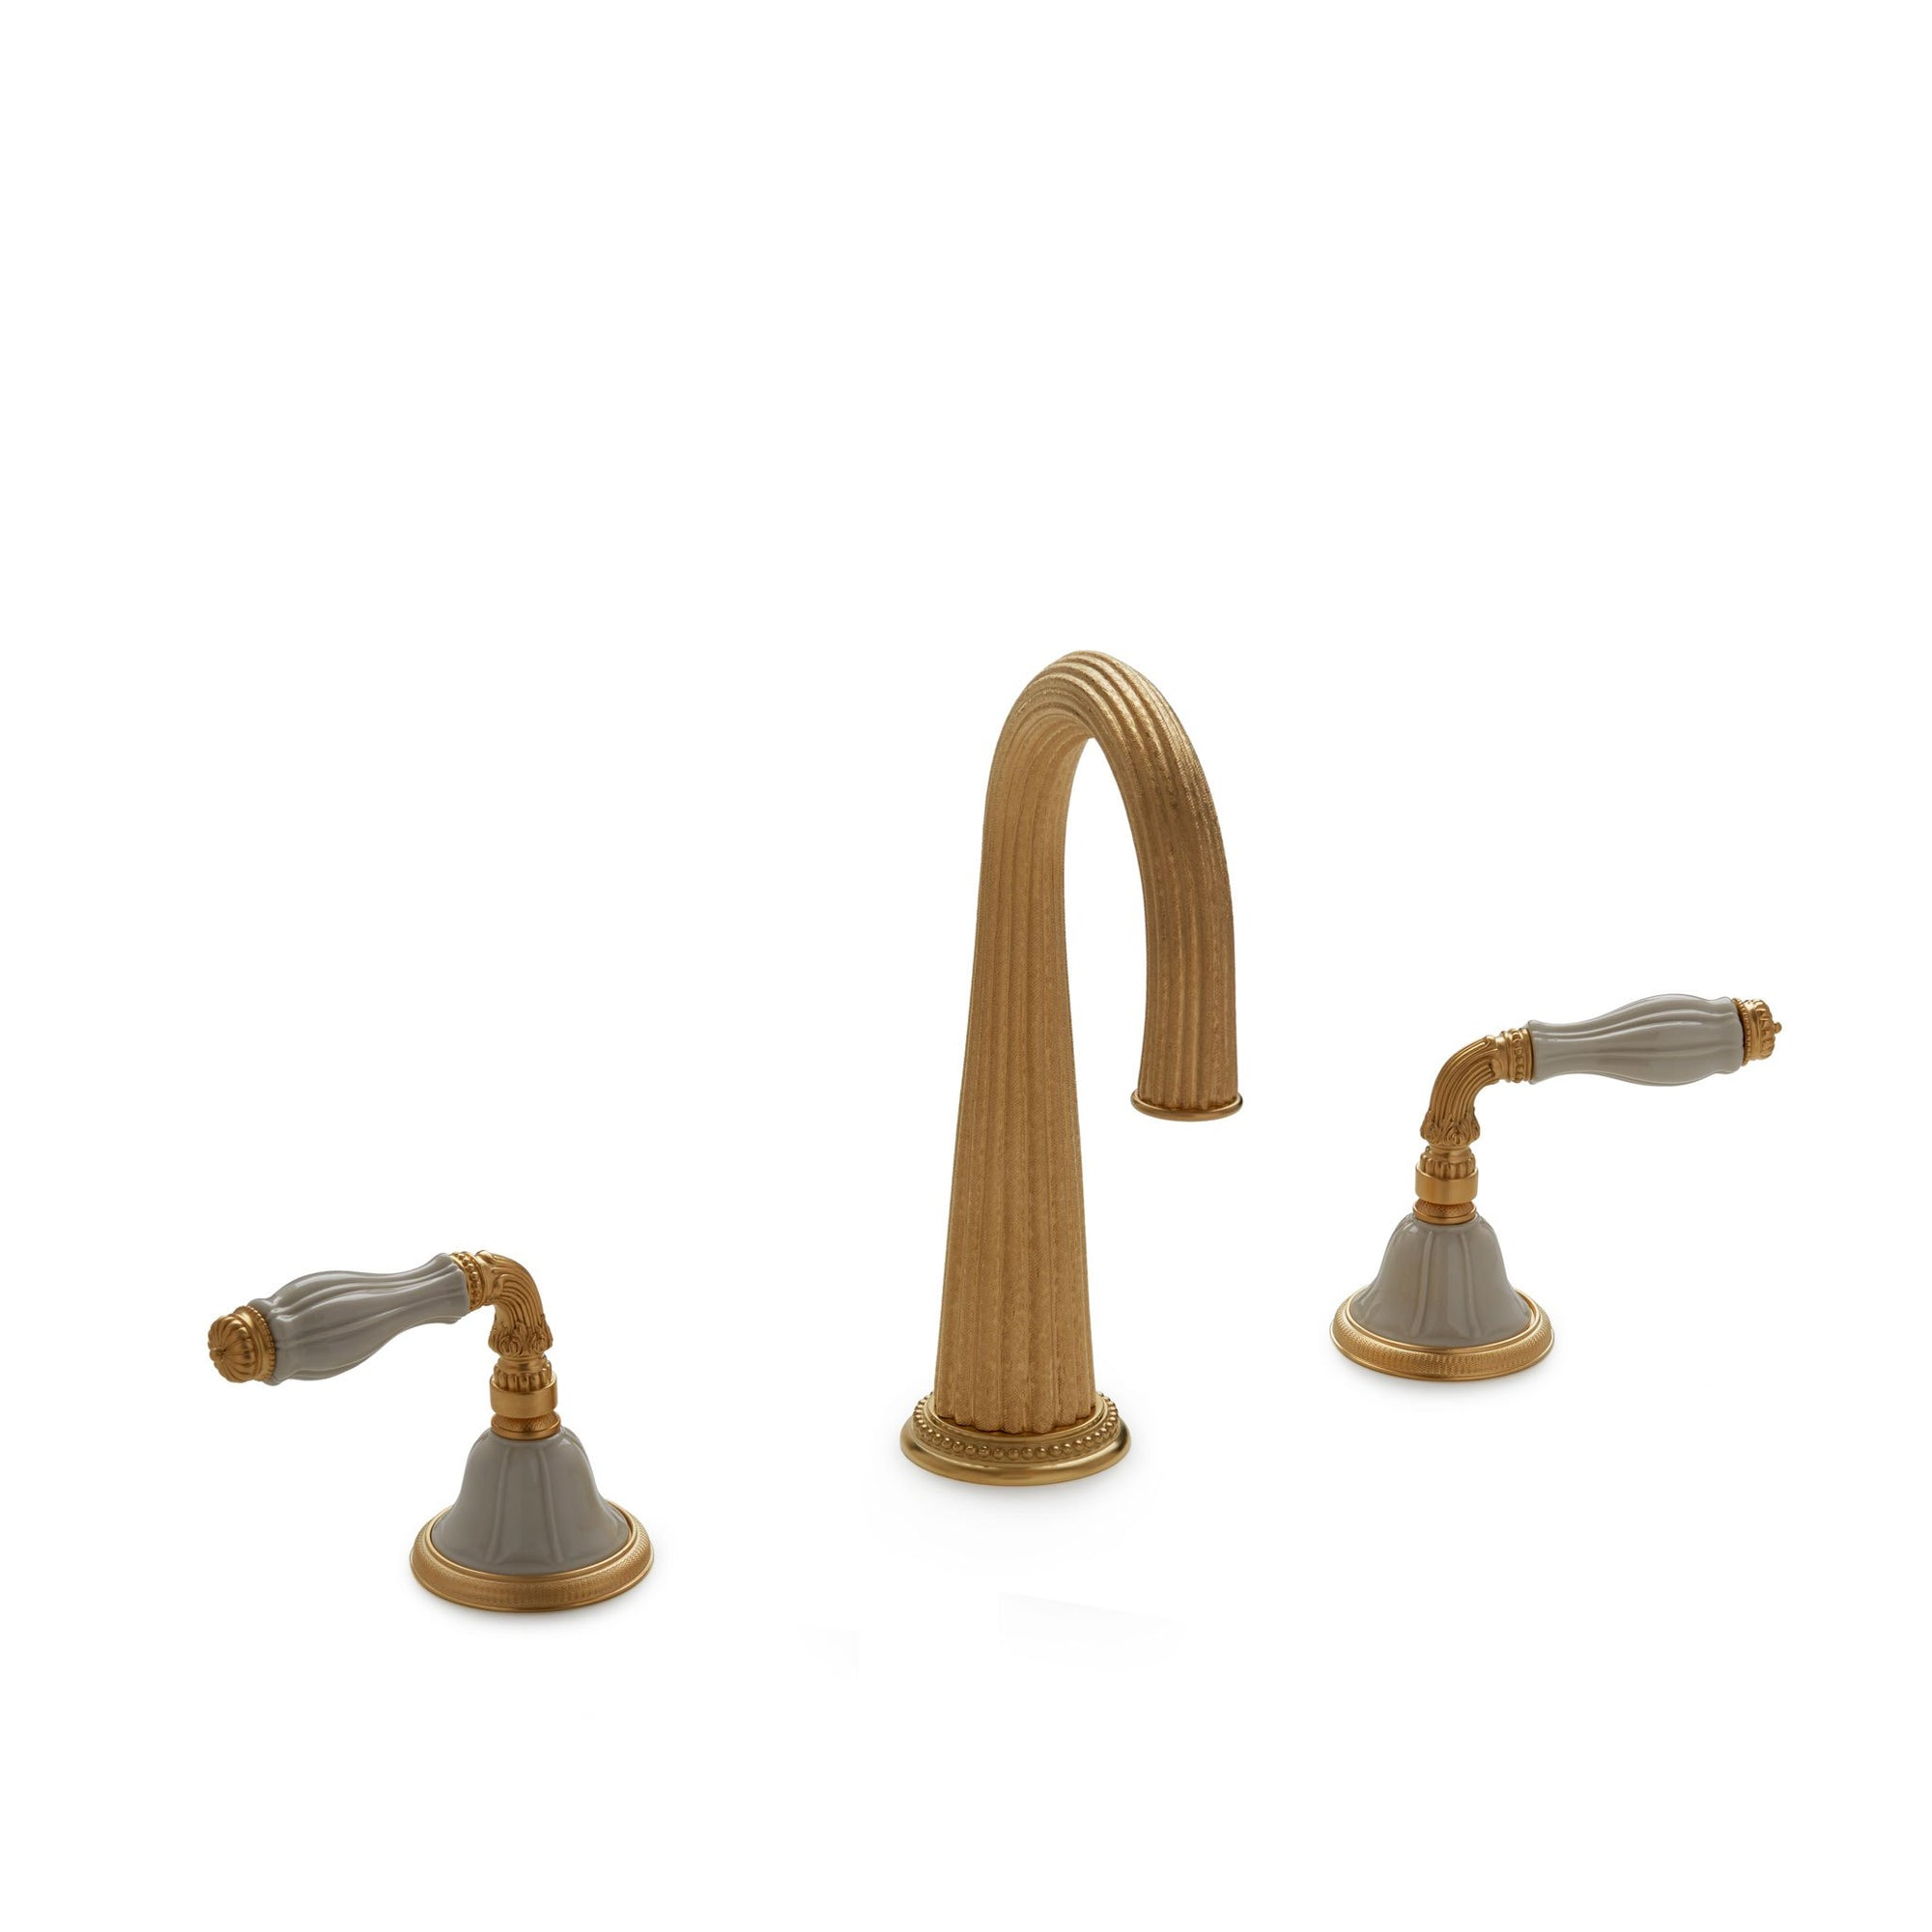 1029BAR821-03SD-GP Sherle Wagner International Scalloped Ceramic Fluted Lever Bar Set in Gold Plate metal finish with Sand Glaze inserts